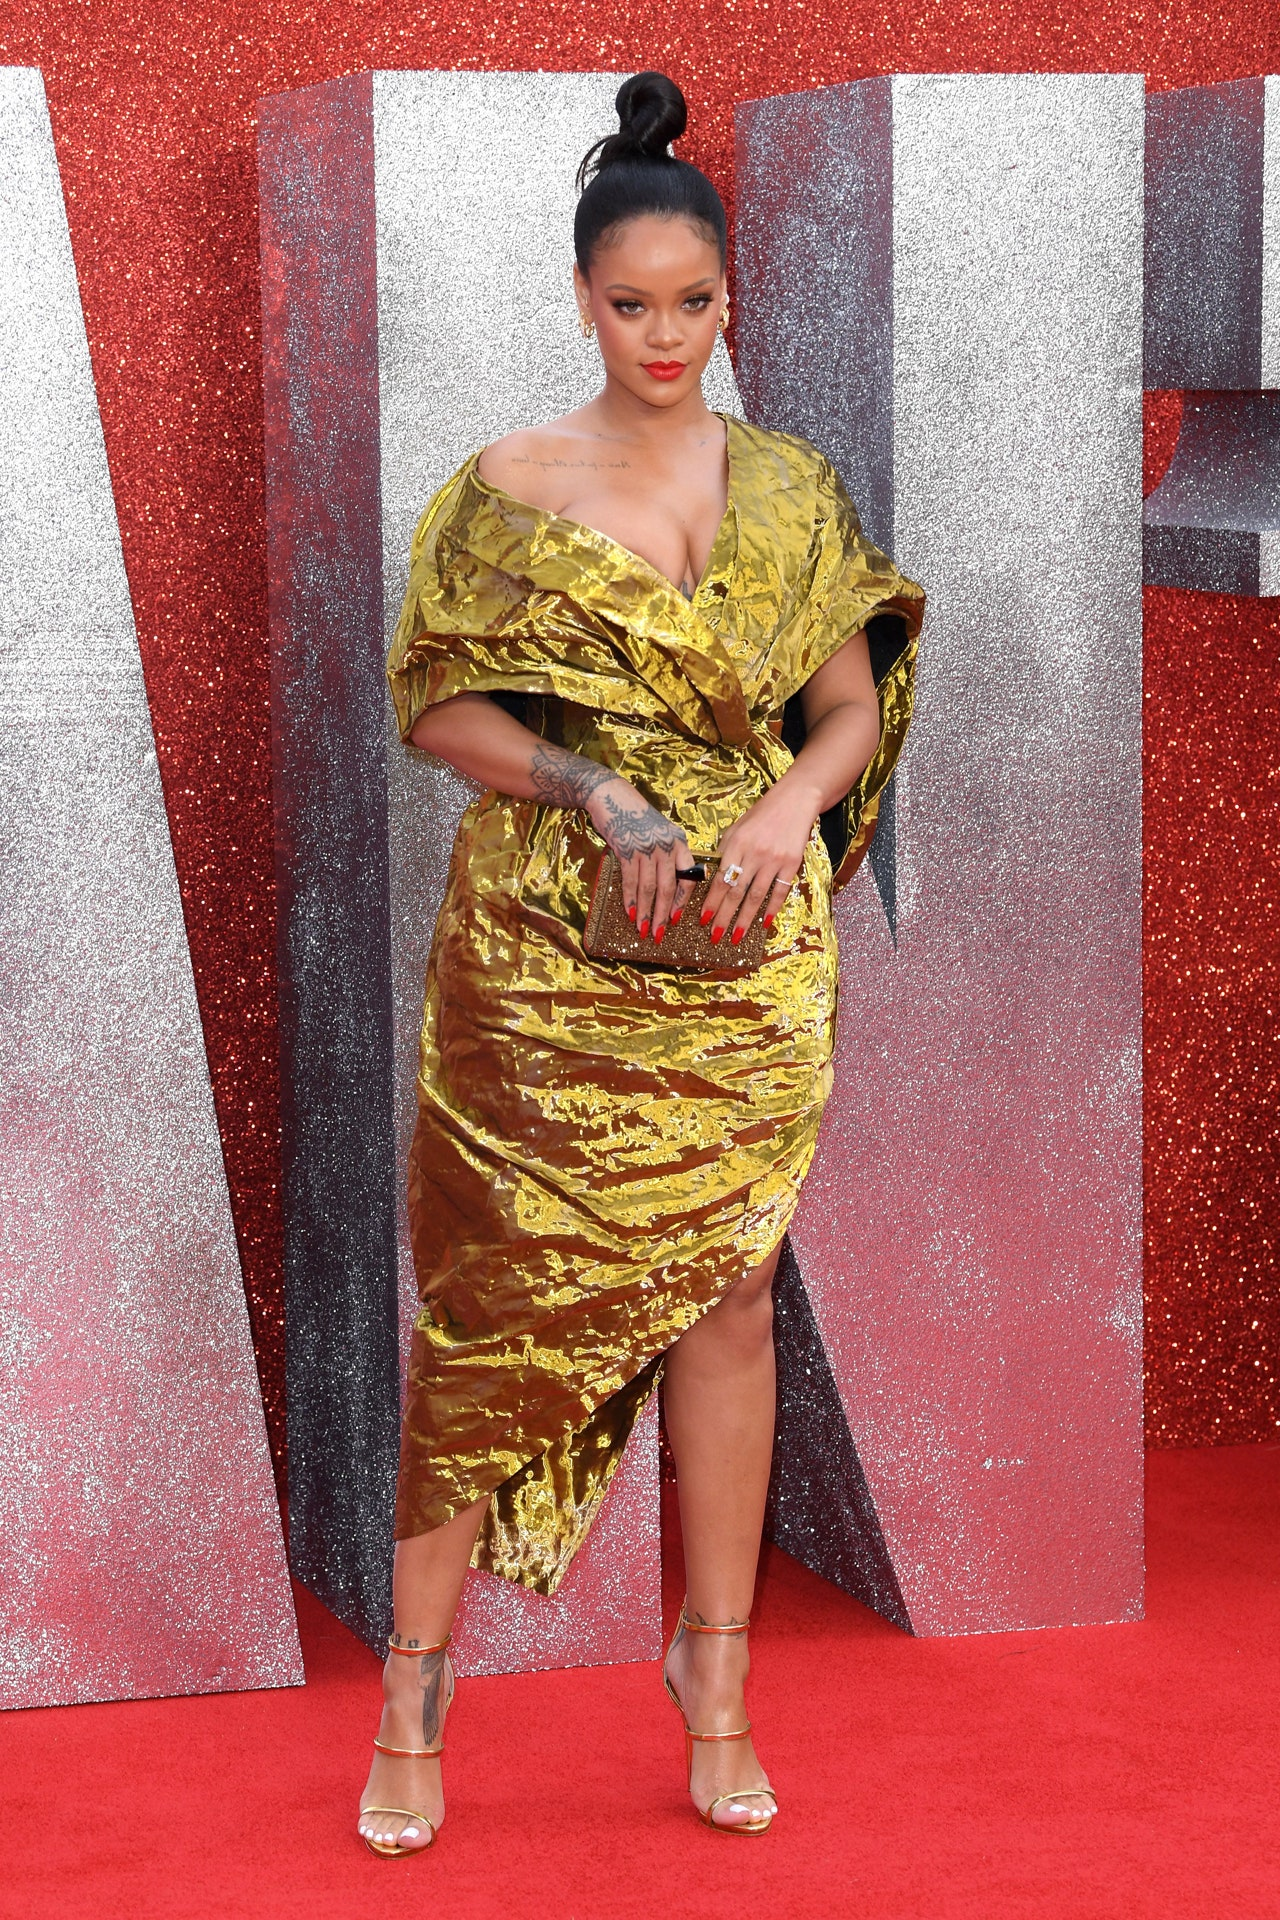 A Look At Rihanna's Style As She Celebrates Her Birthday ...